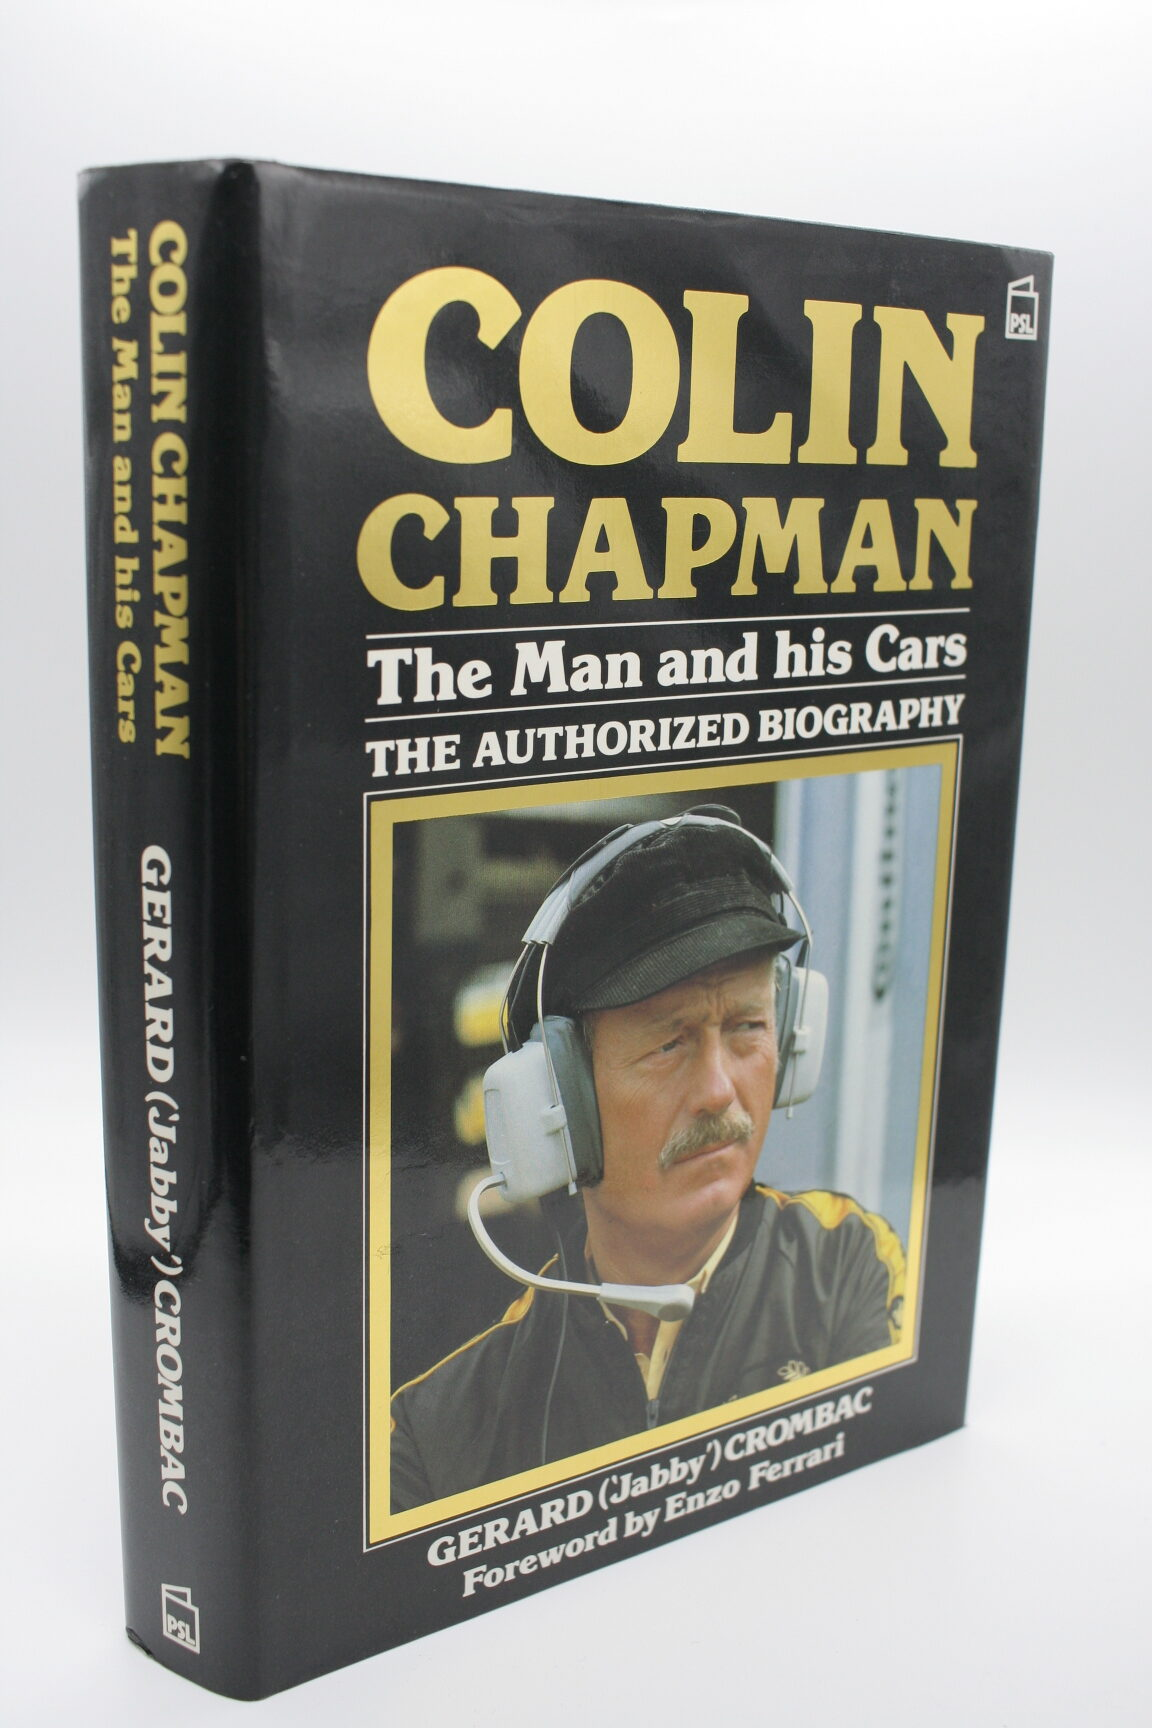 Colin Chapman: The Man and His Cars - Gerard Crombac